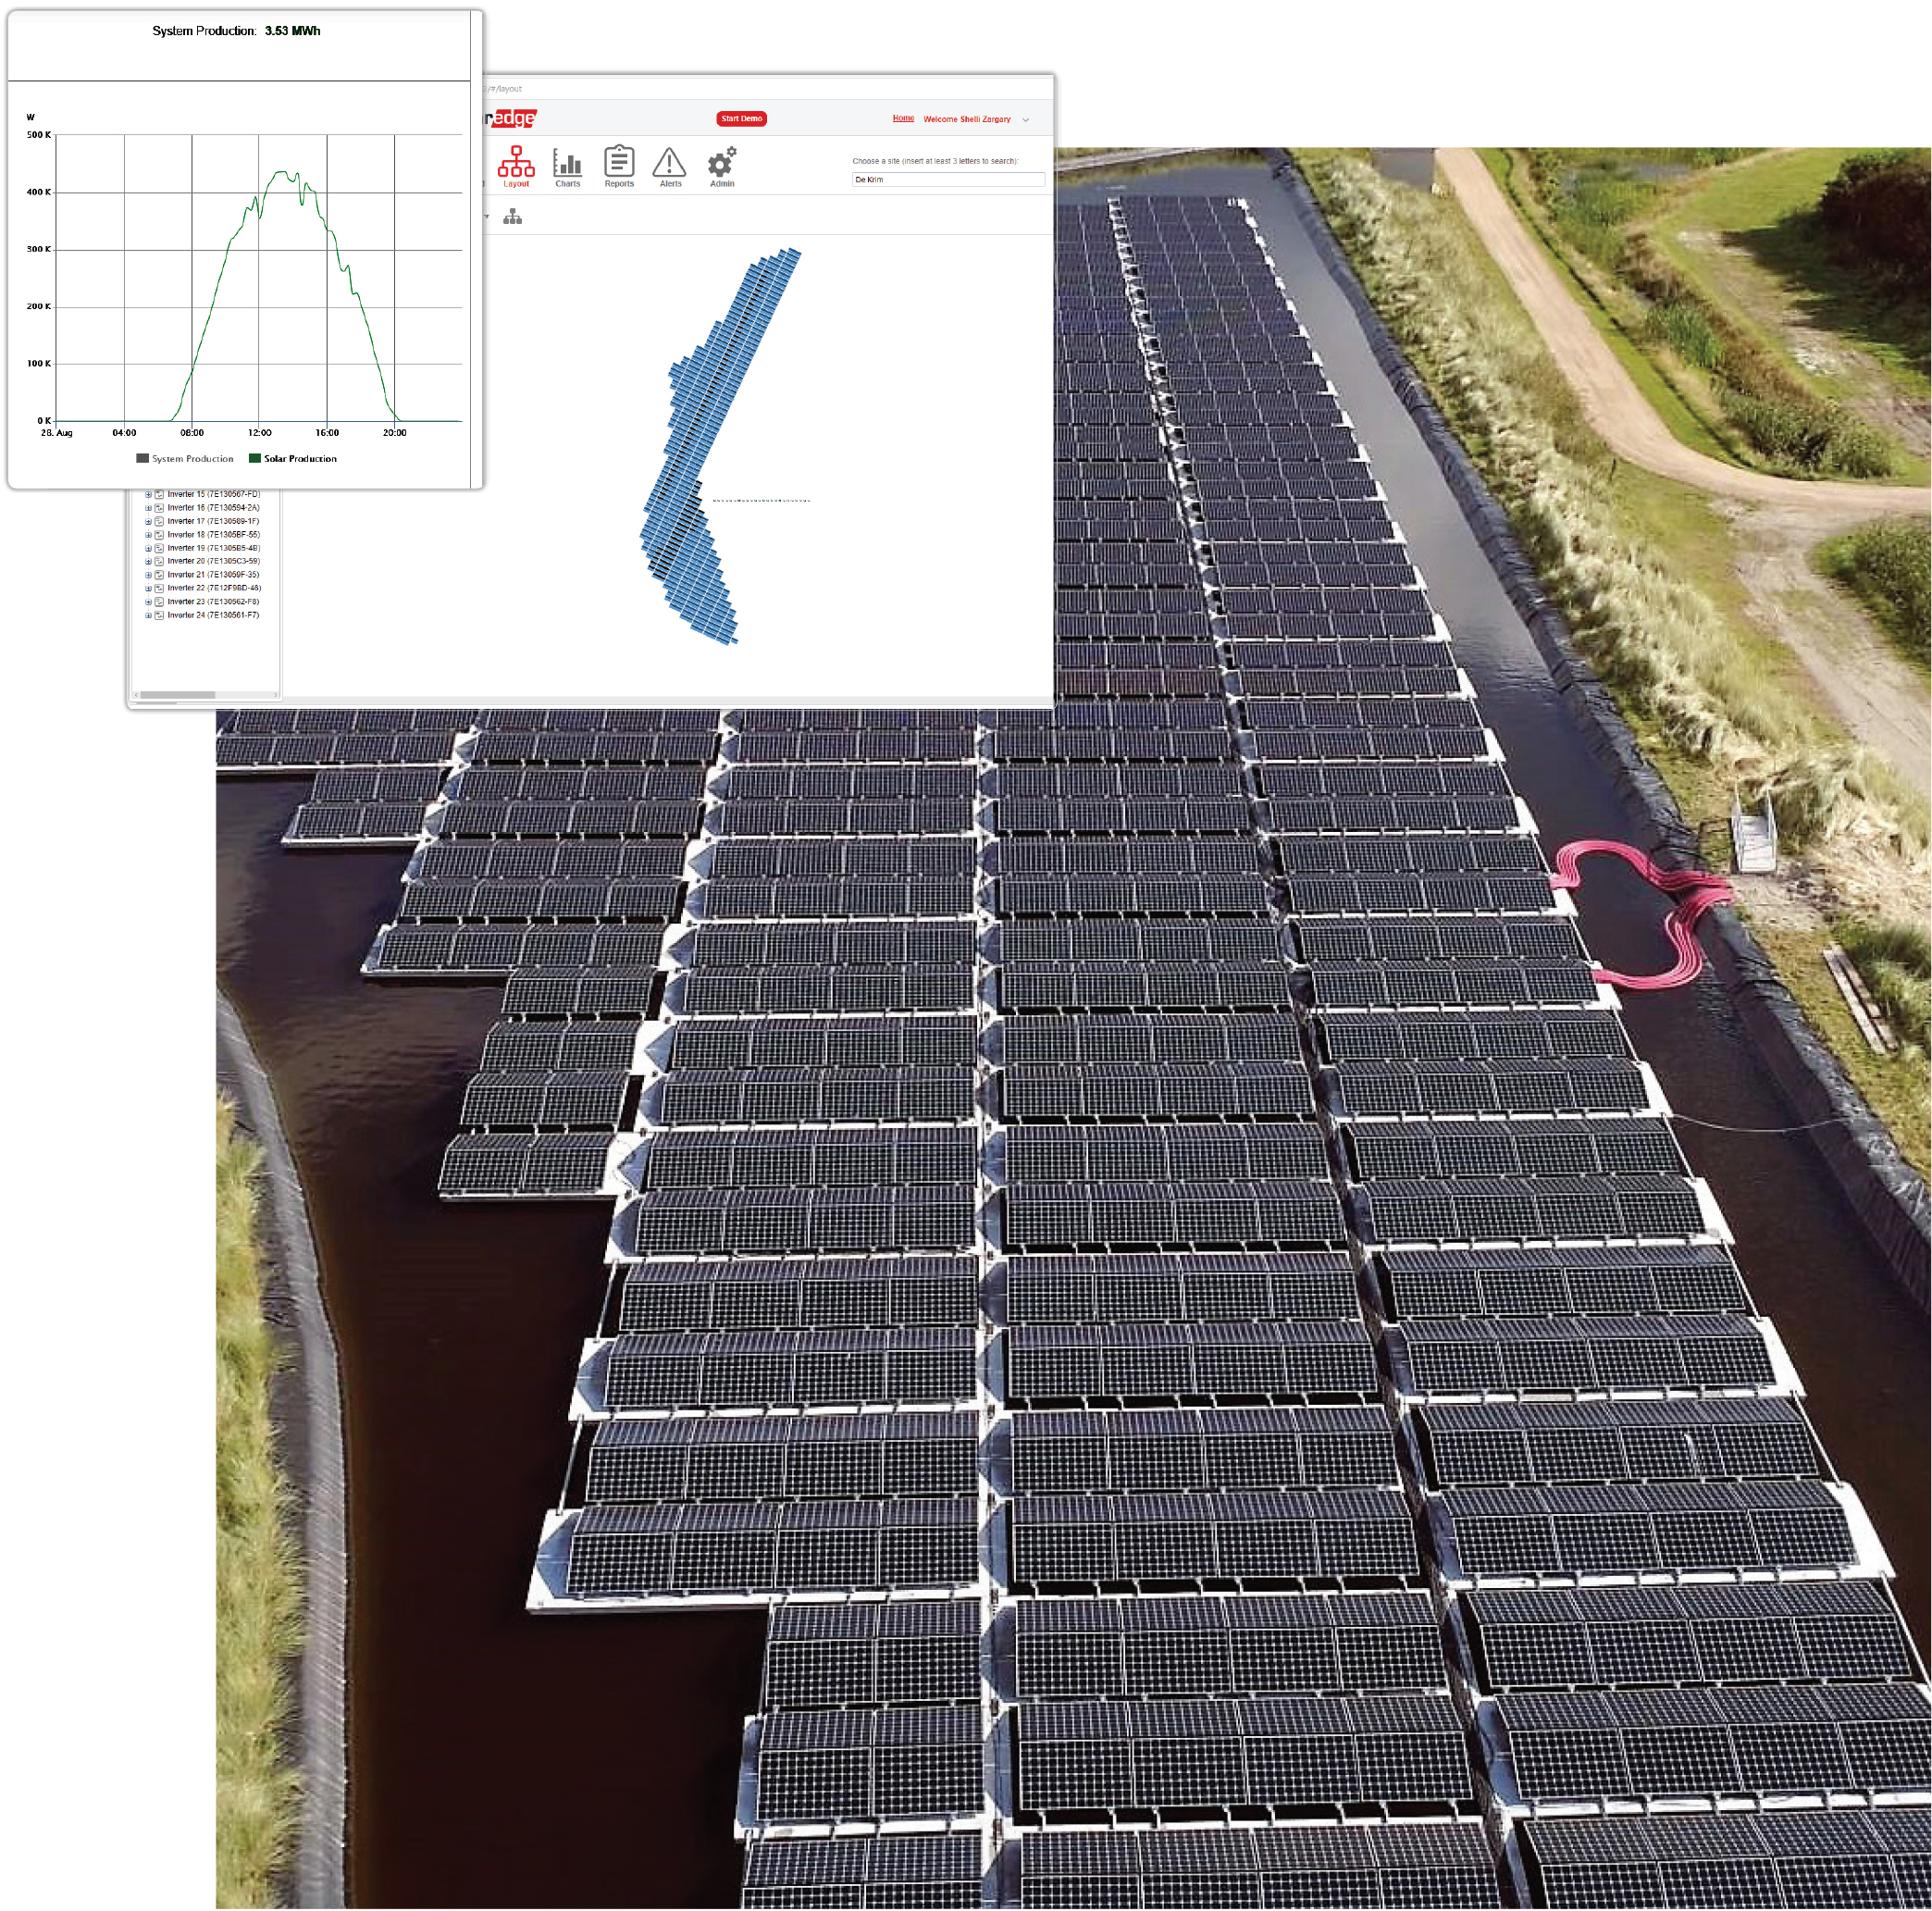 The SolarEdge monitoring platform dashboard shows status updates, alerts and other information transmitted from the site. Users can see the physical layout of the installation as well as detailed charts about system performance, reducing costs by enabling the remote monitoring of operations.